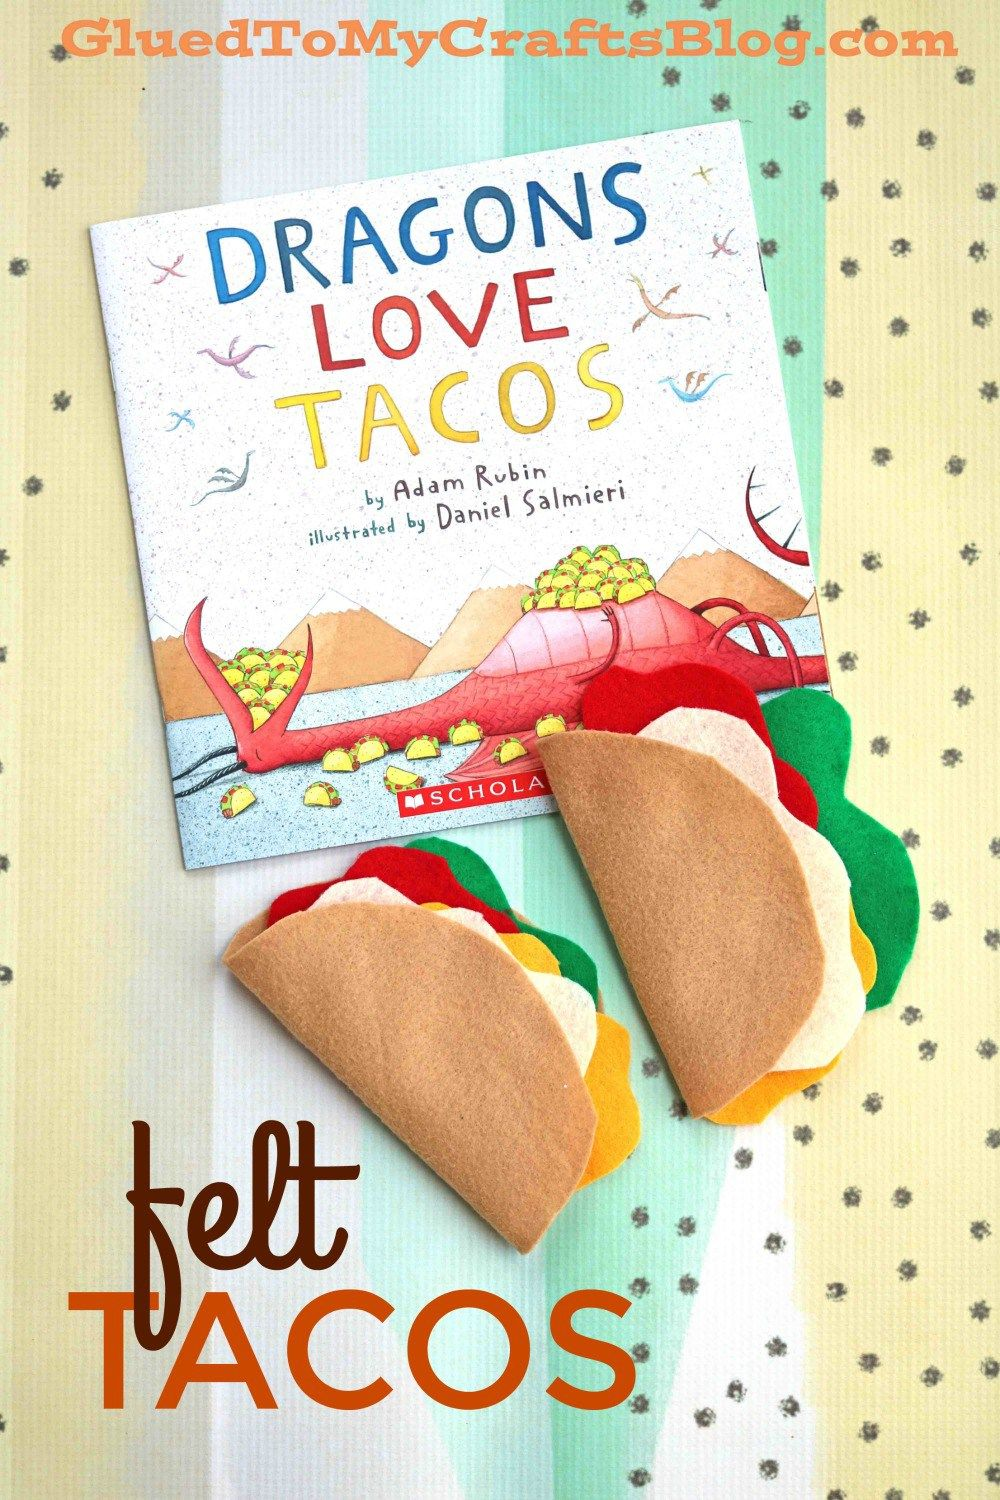 Felt Tacos for Dragons Love Tacos